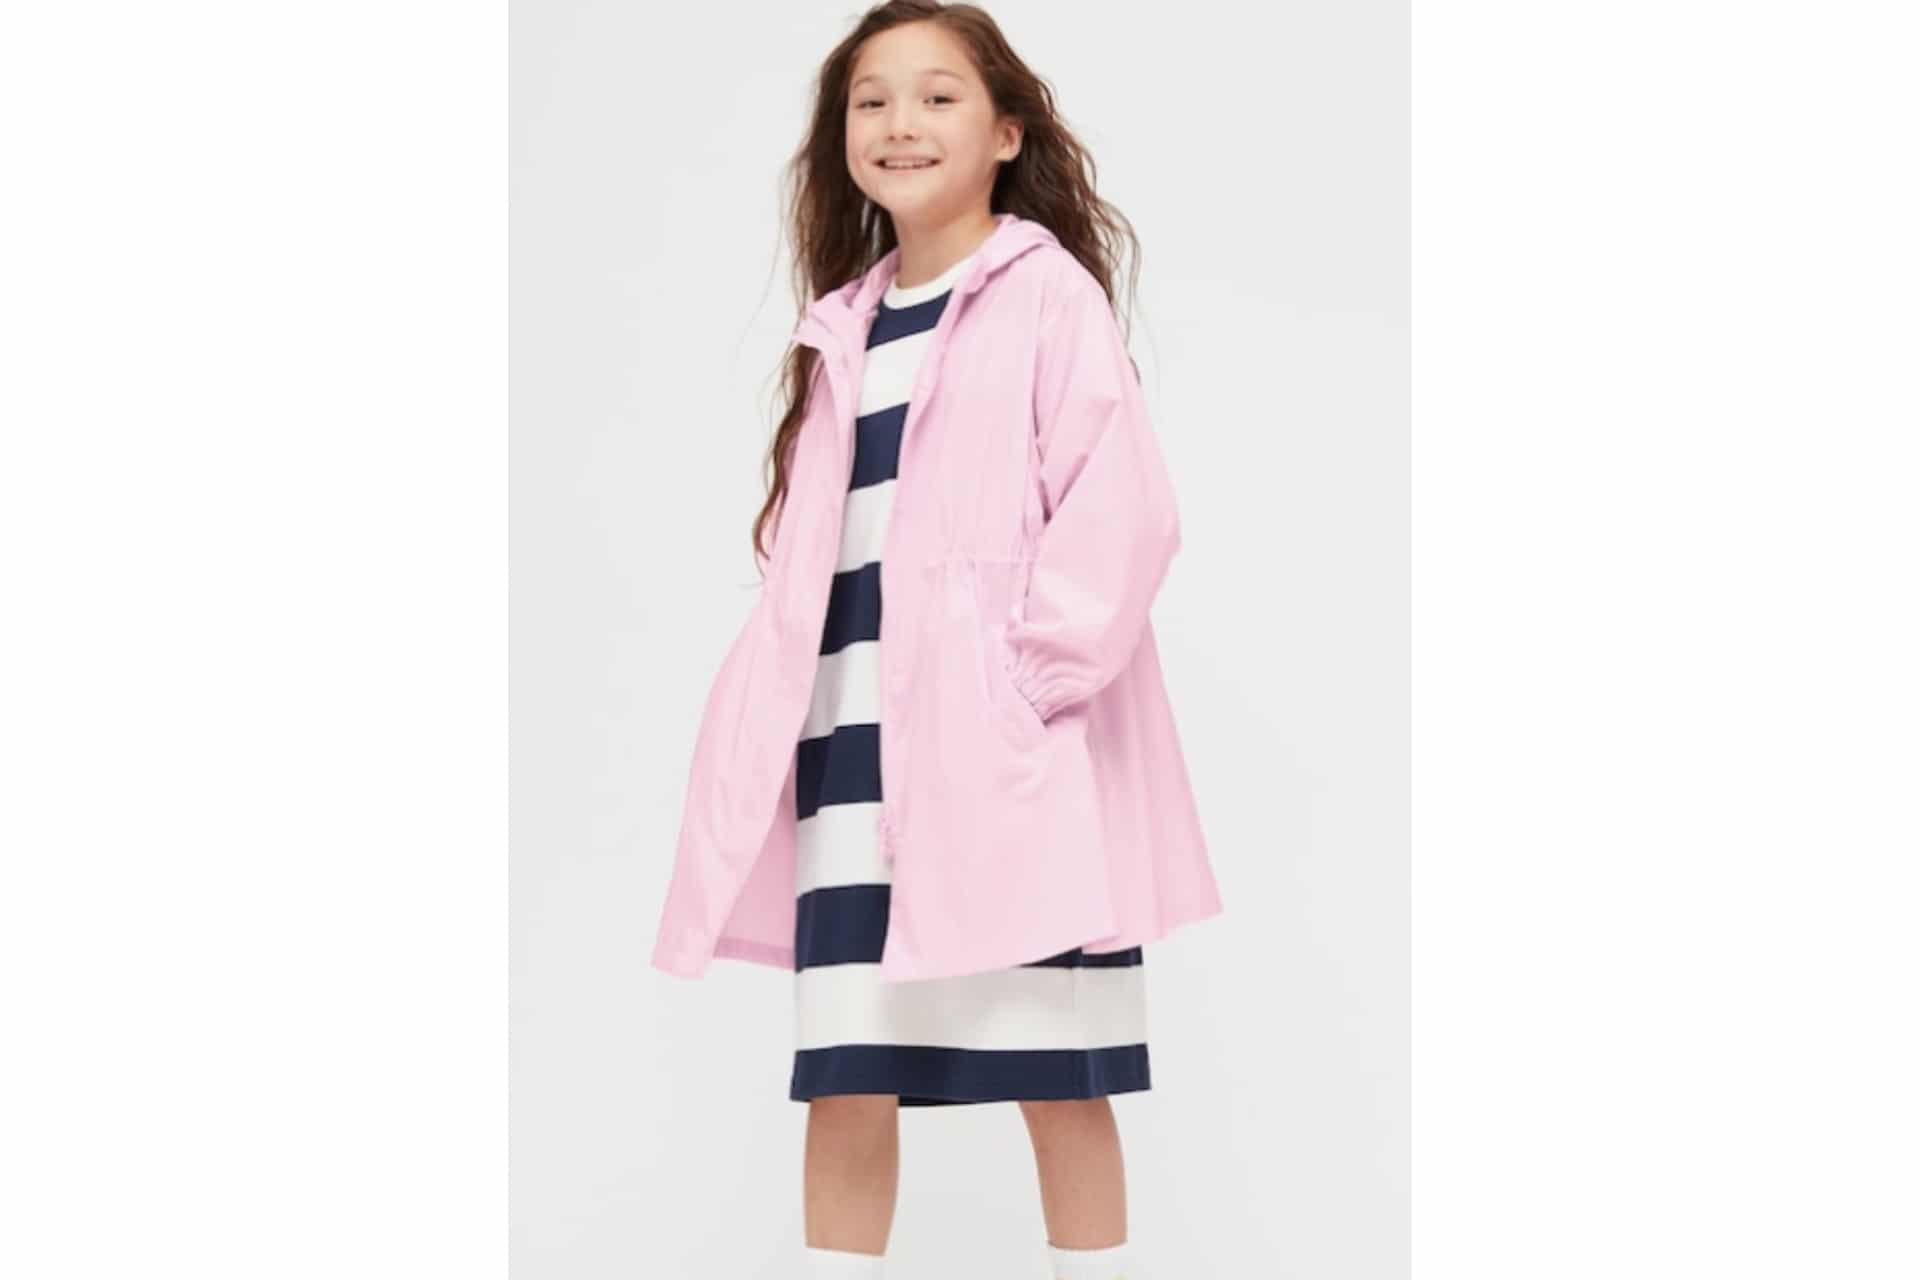 pink rain coat on a girl wearing a striped dress